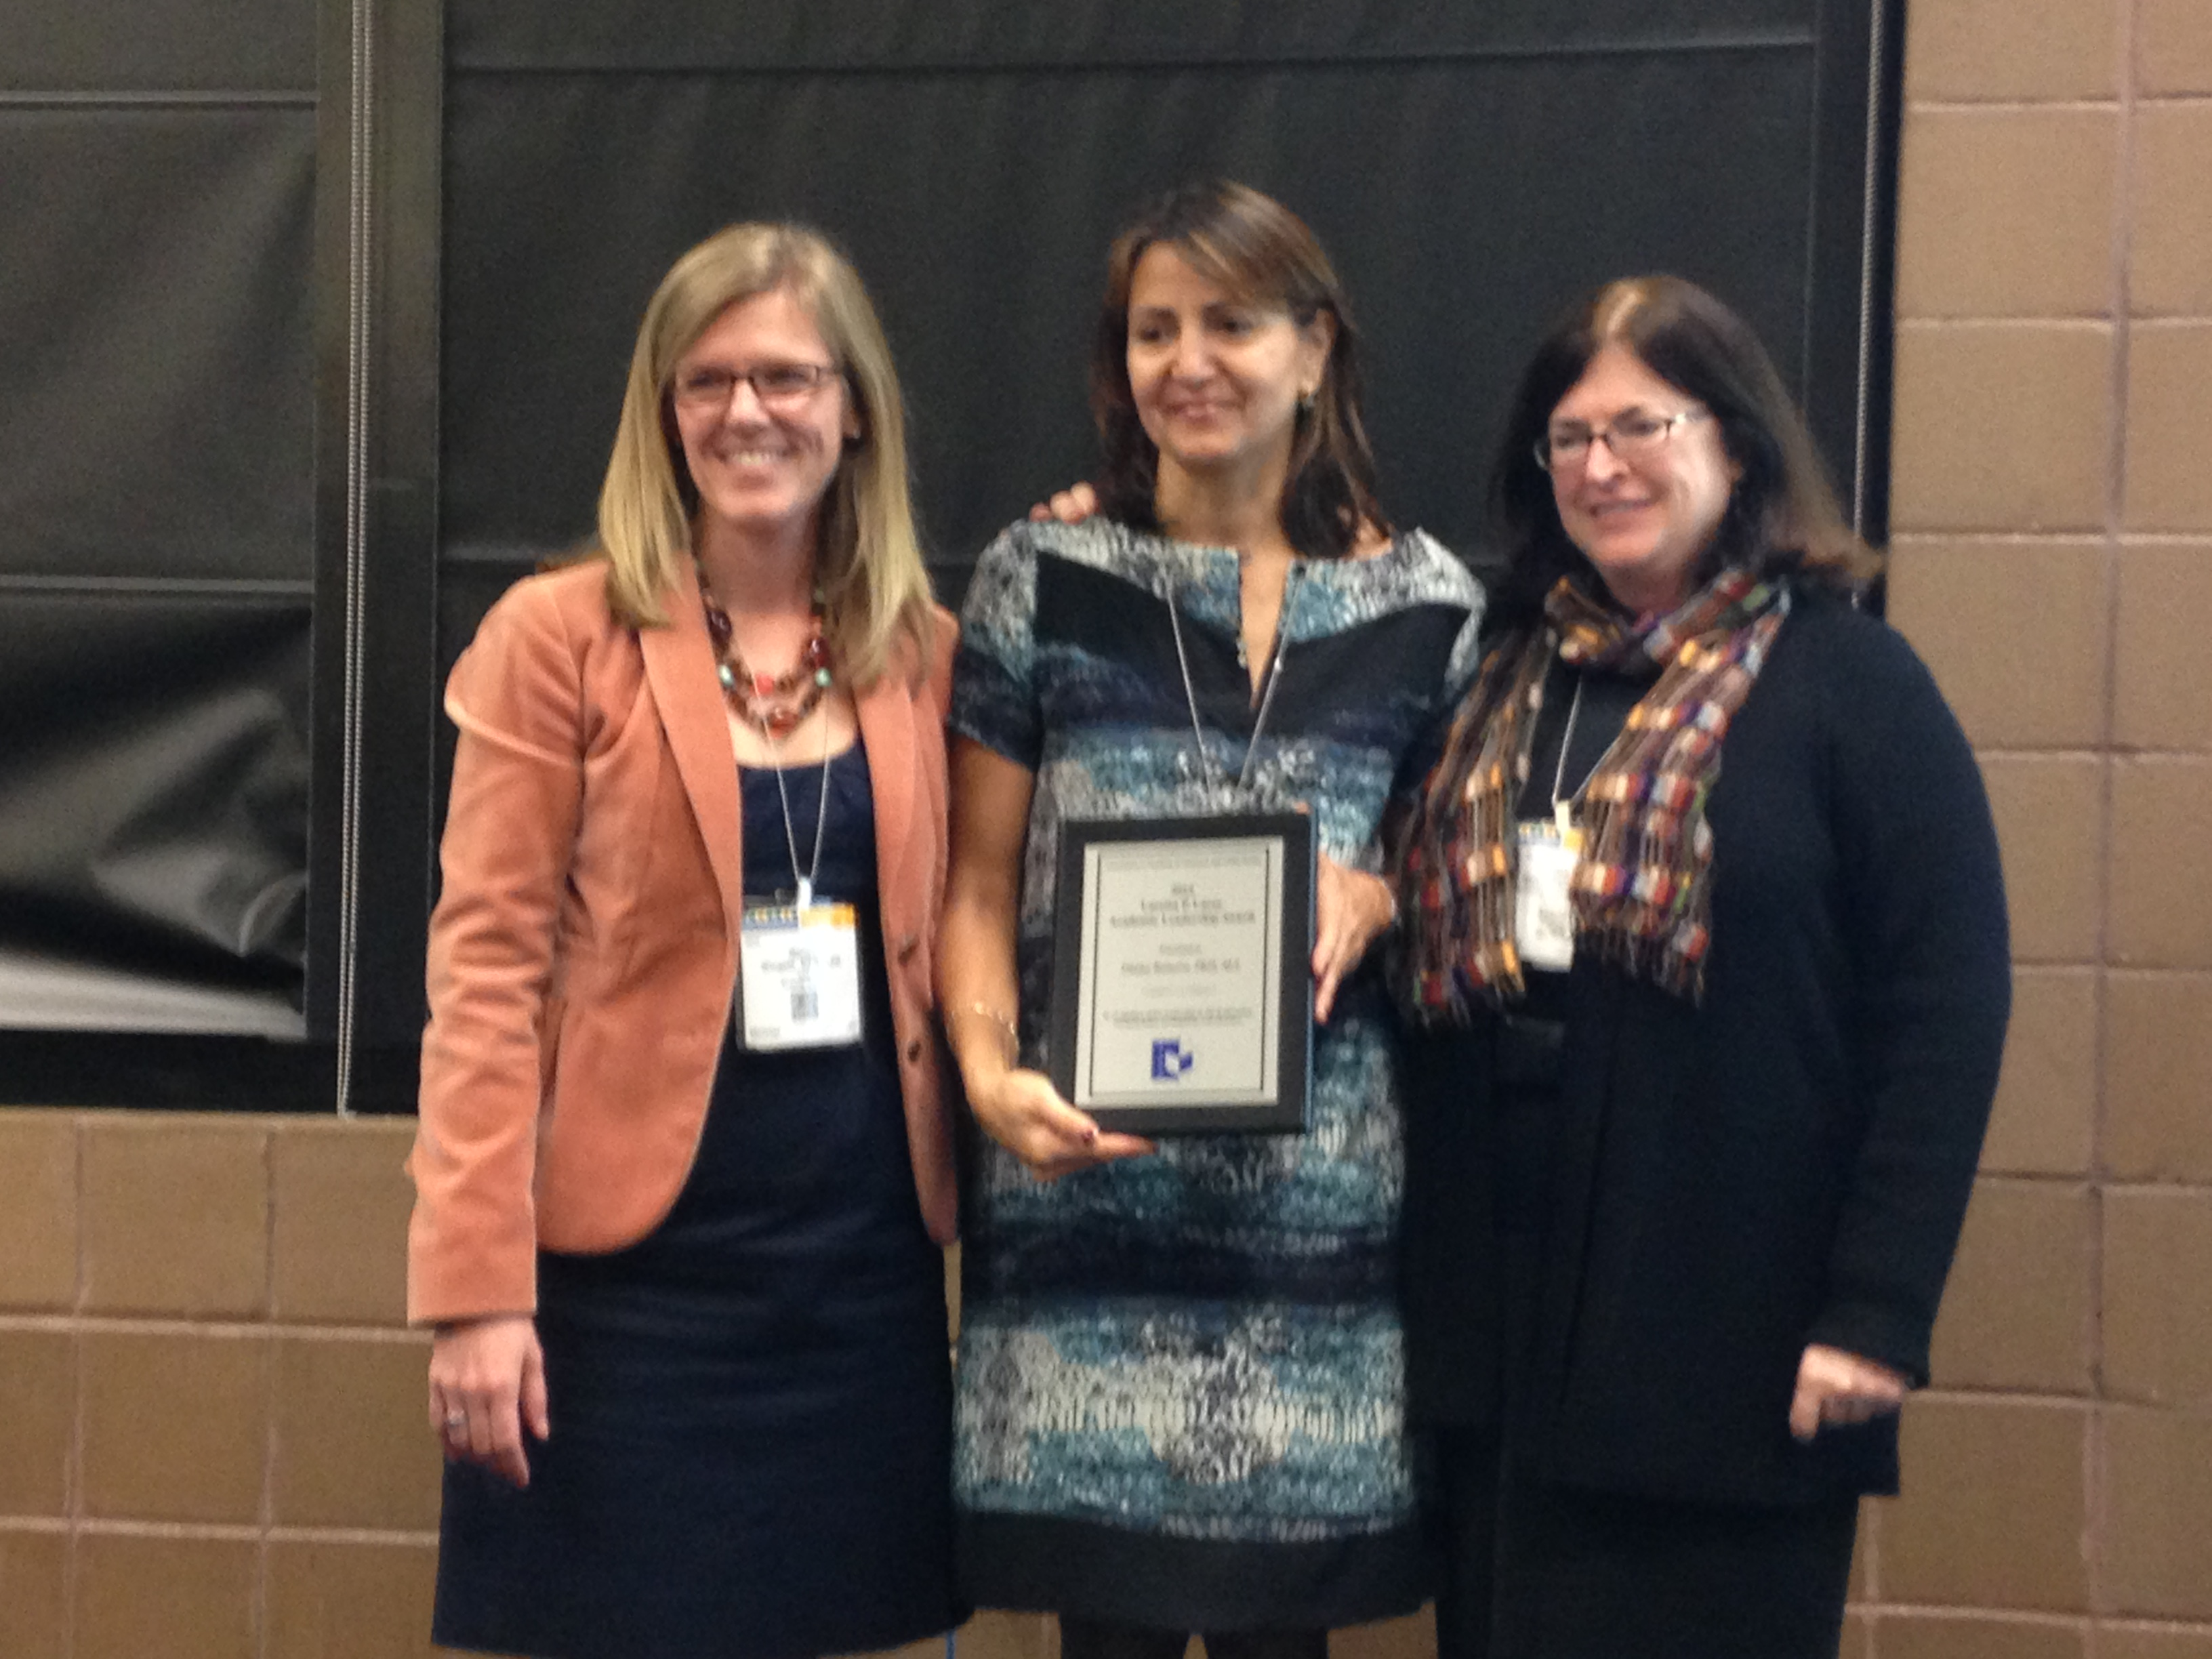 CUNY School of Public Health Faculty and Students Receive